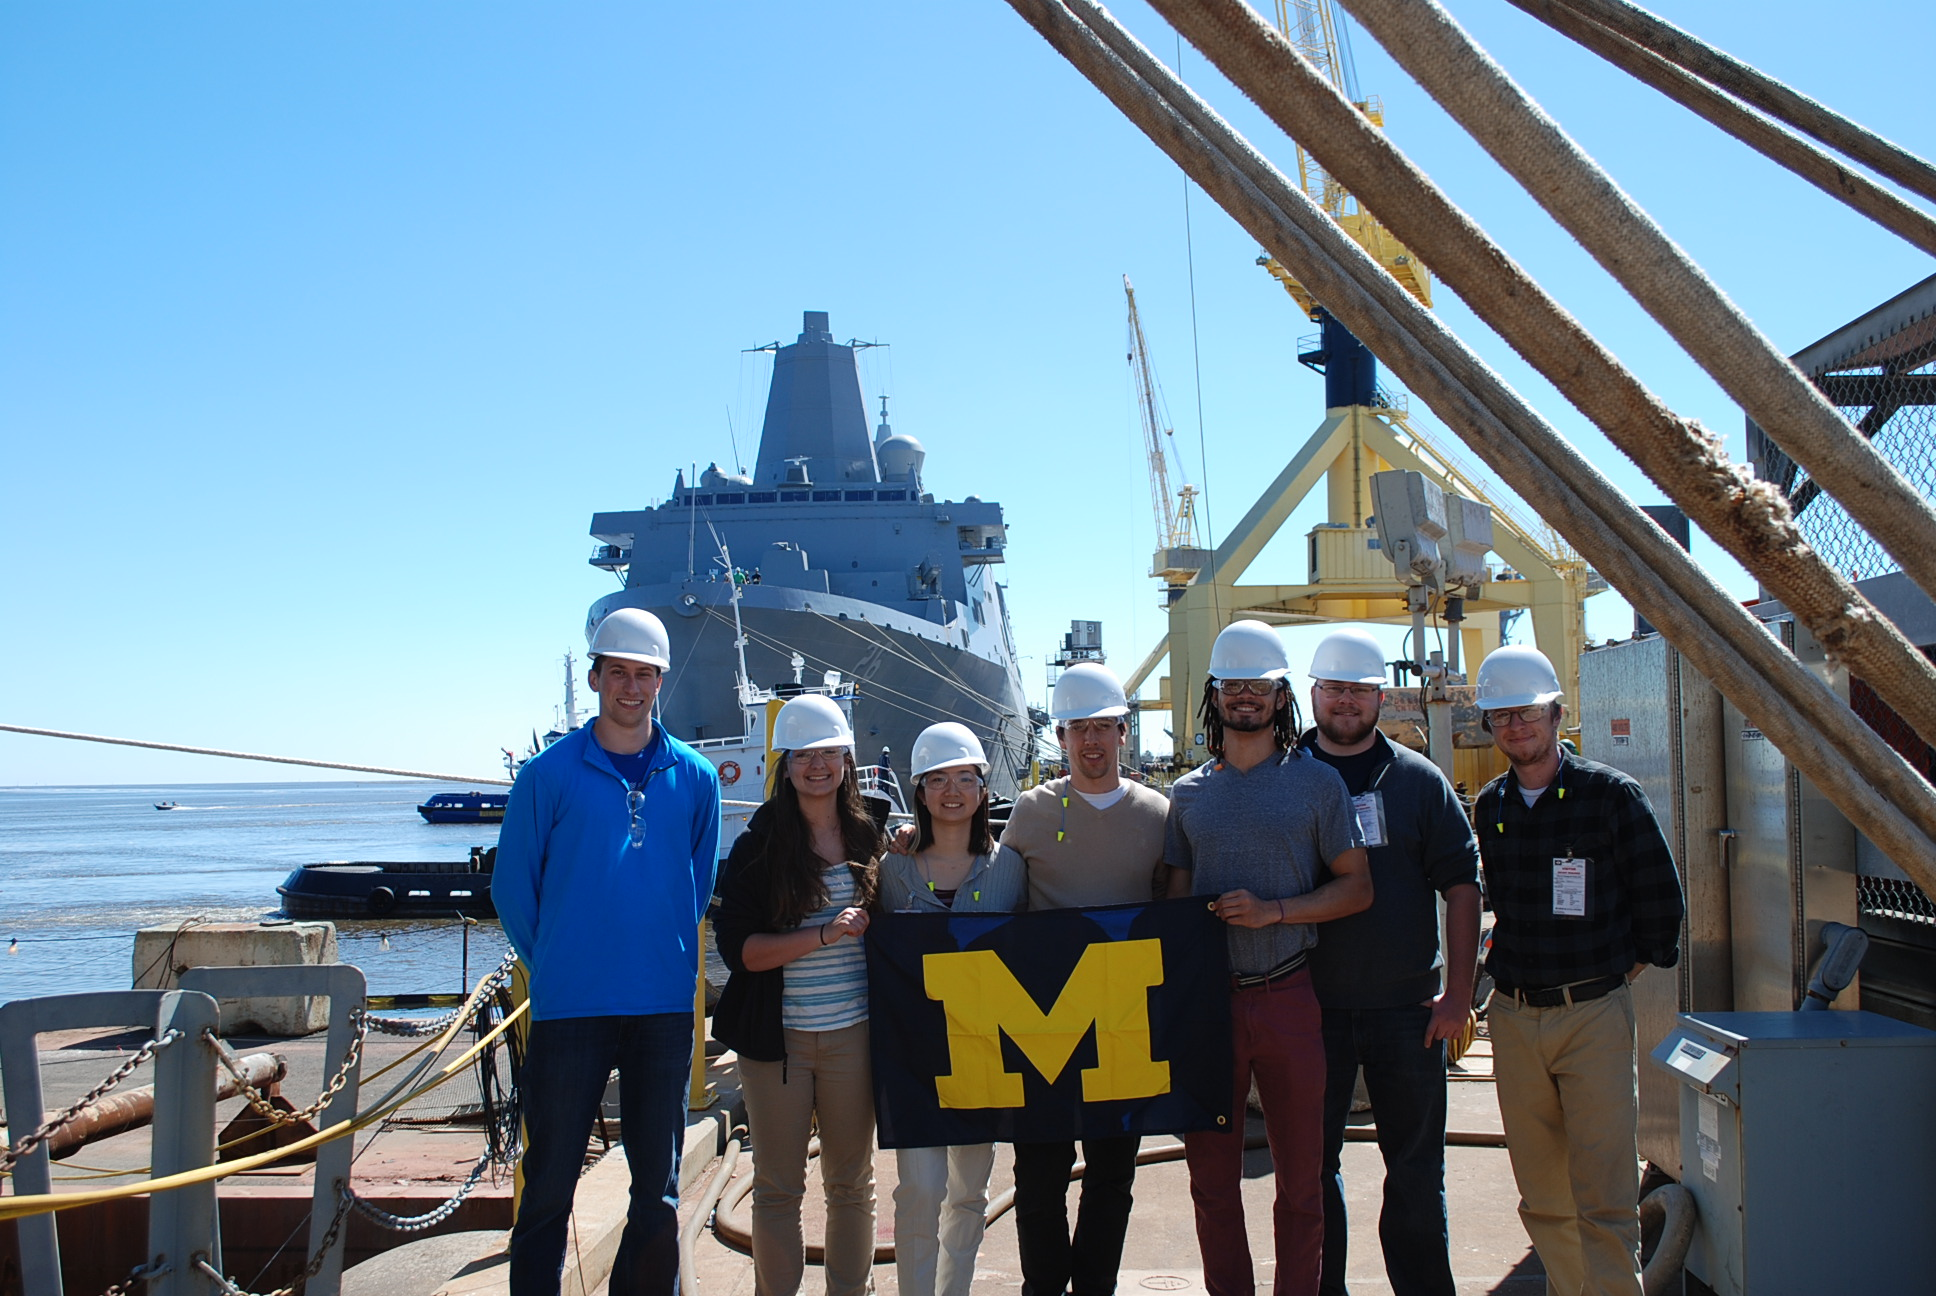 If You Have Questions About Quarterdeck And/or The University Of Michigan  Naval Architecture U0026 Marine Engineering Department, Please Email Us At ...